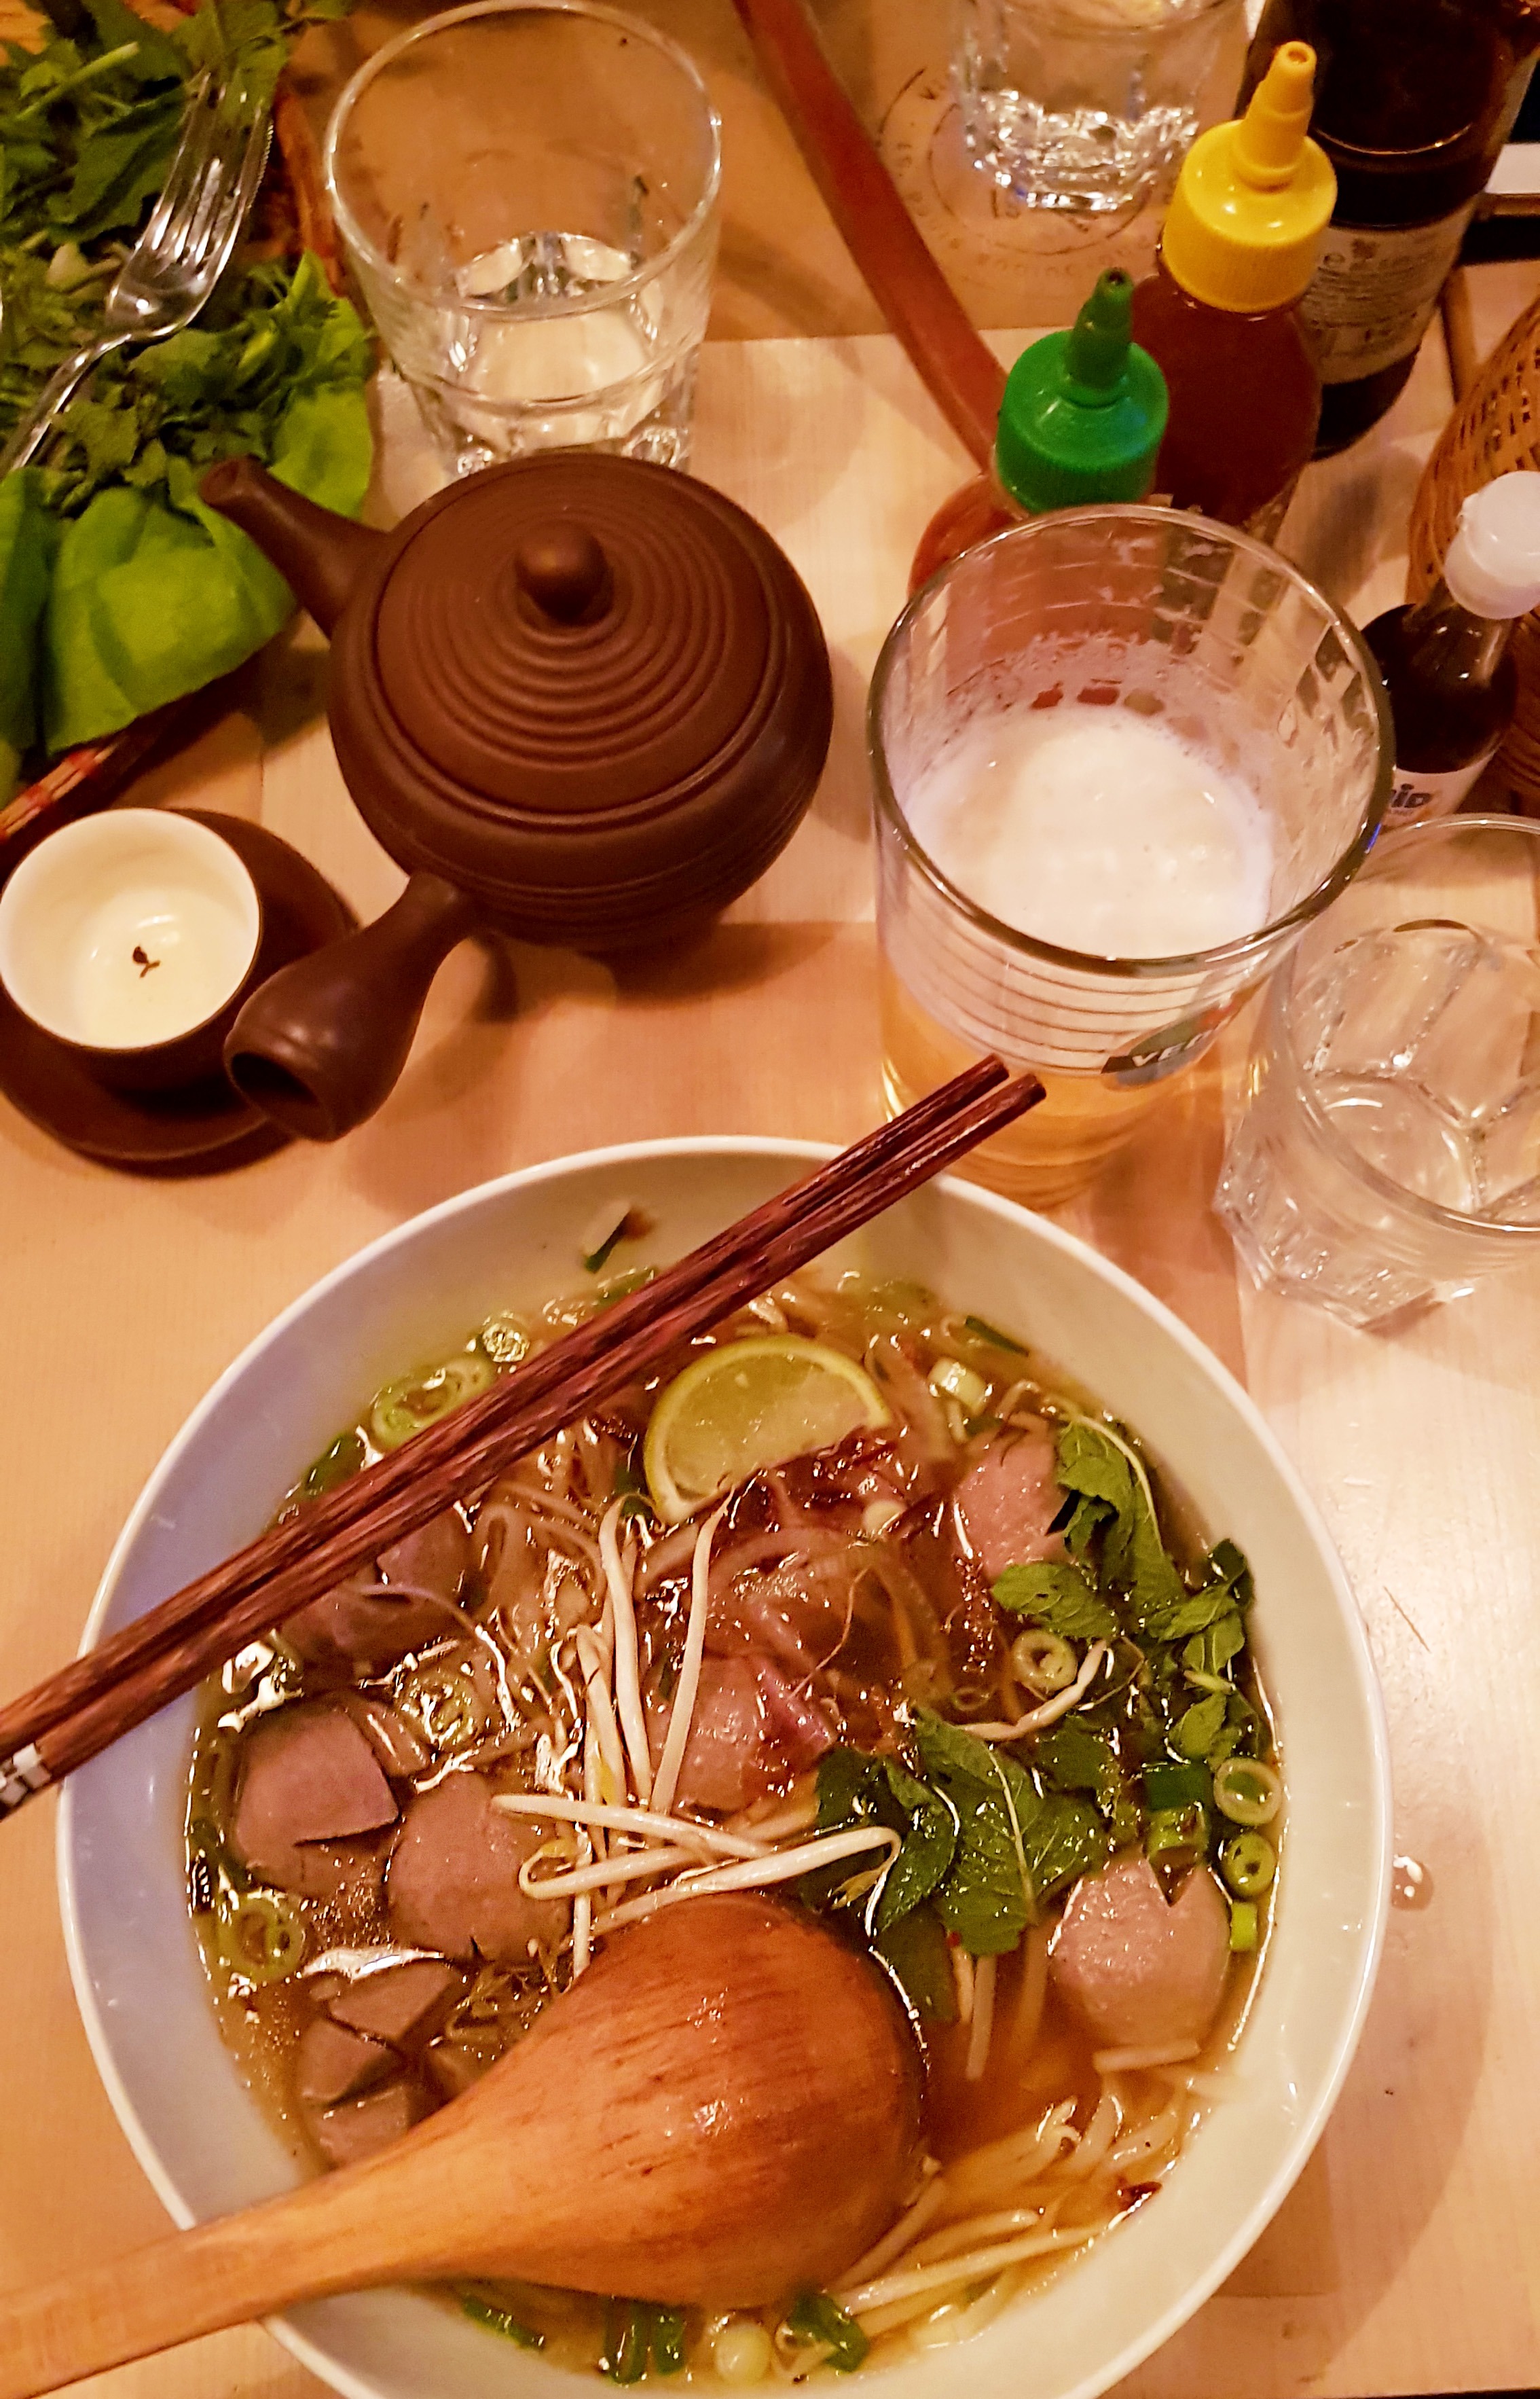 Pho 61 Vietnamese Noodle Soup Restaurant Antwerp Belgium The Asian Craving food and travel Europe